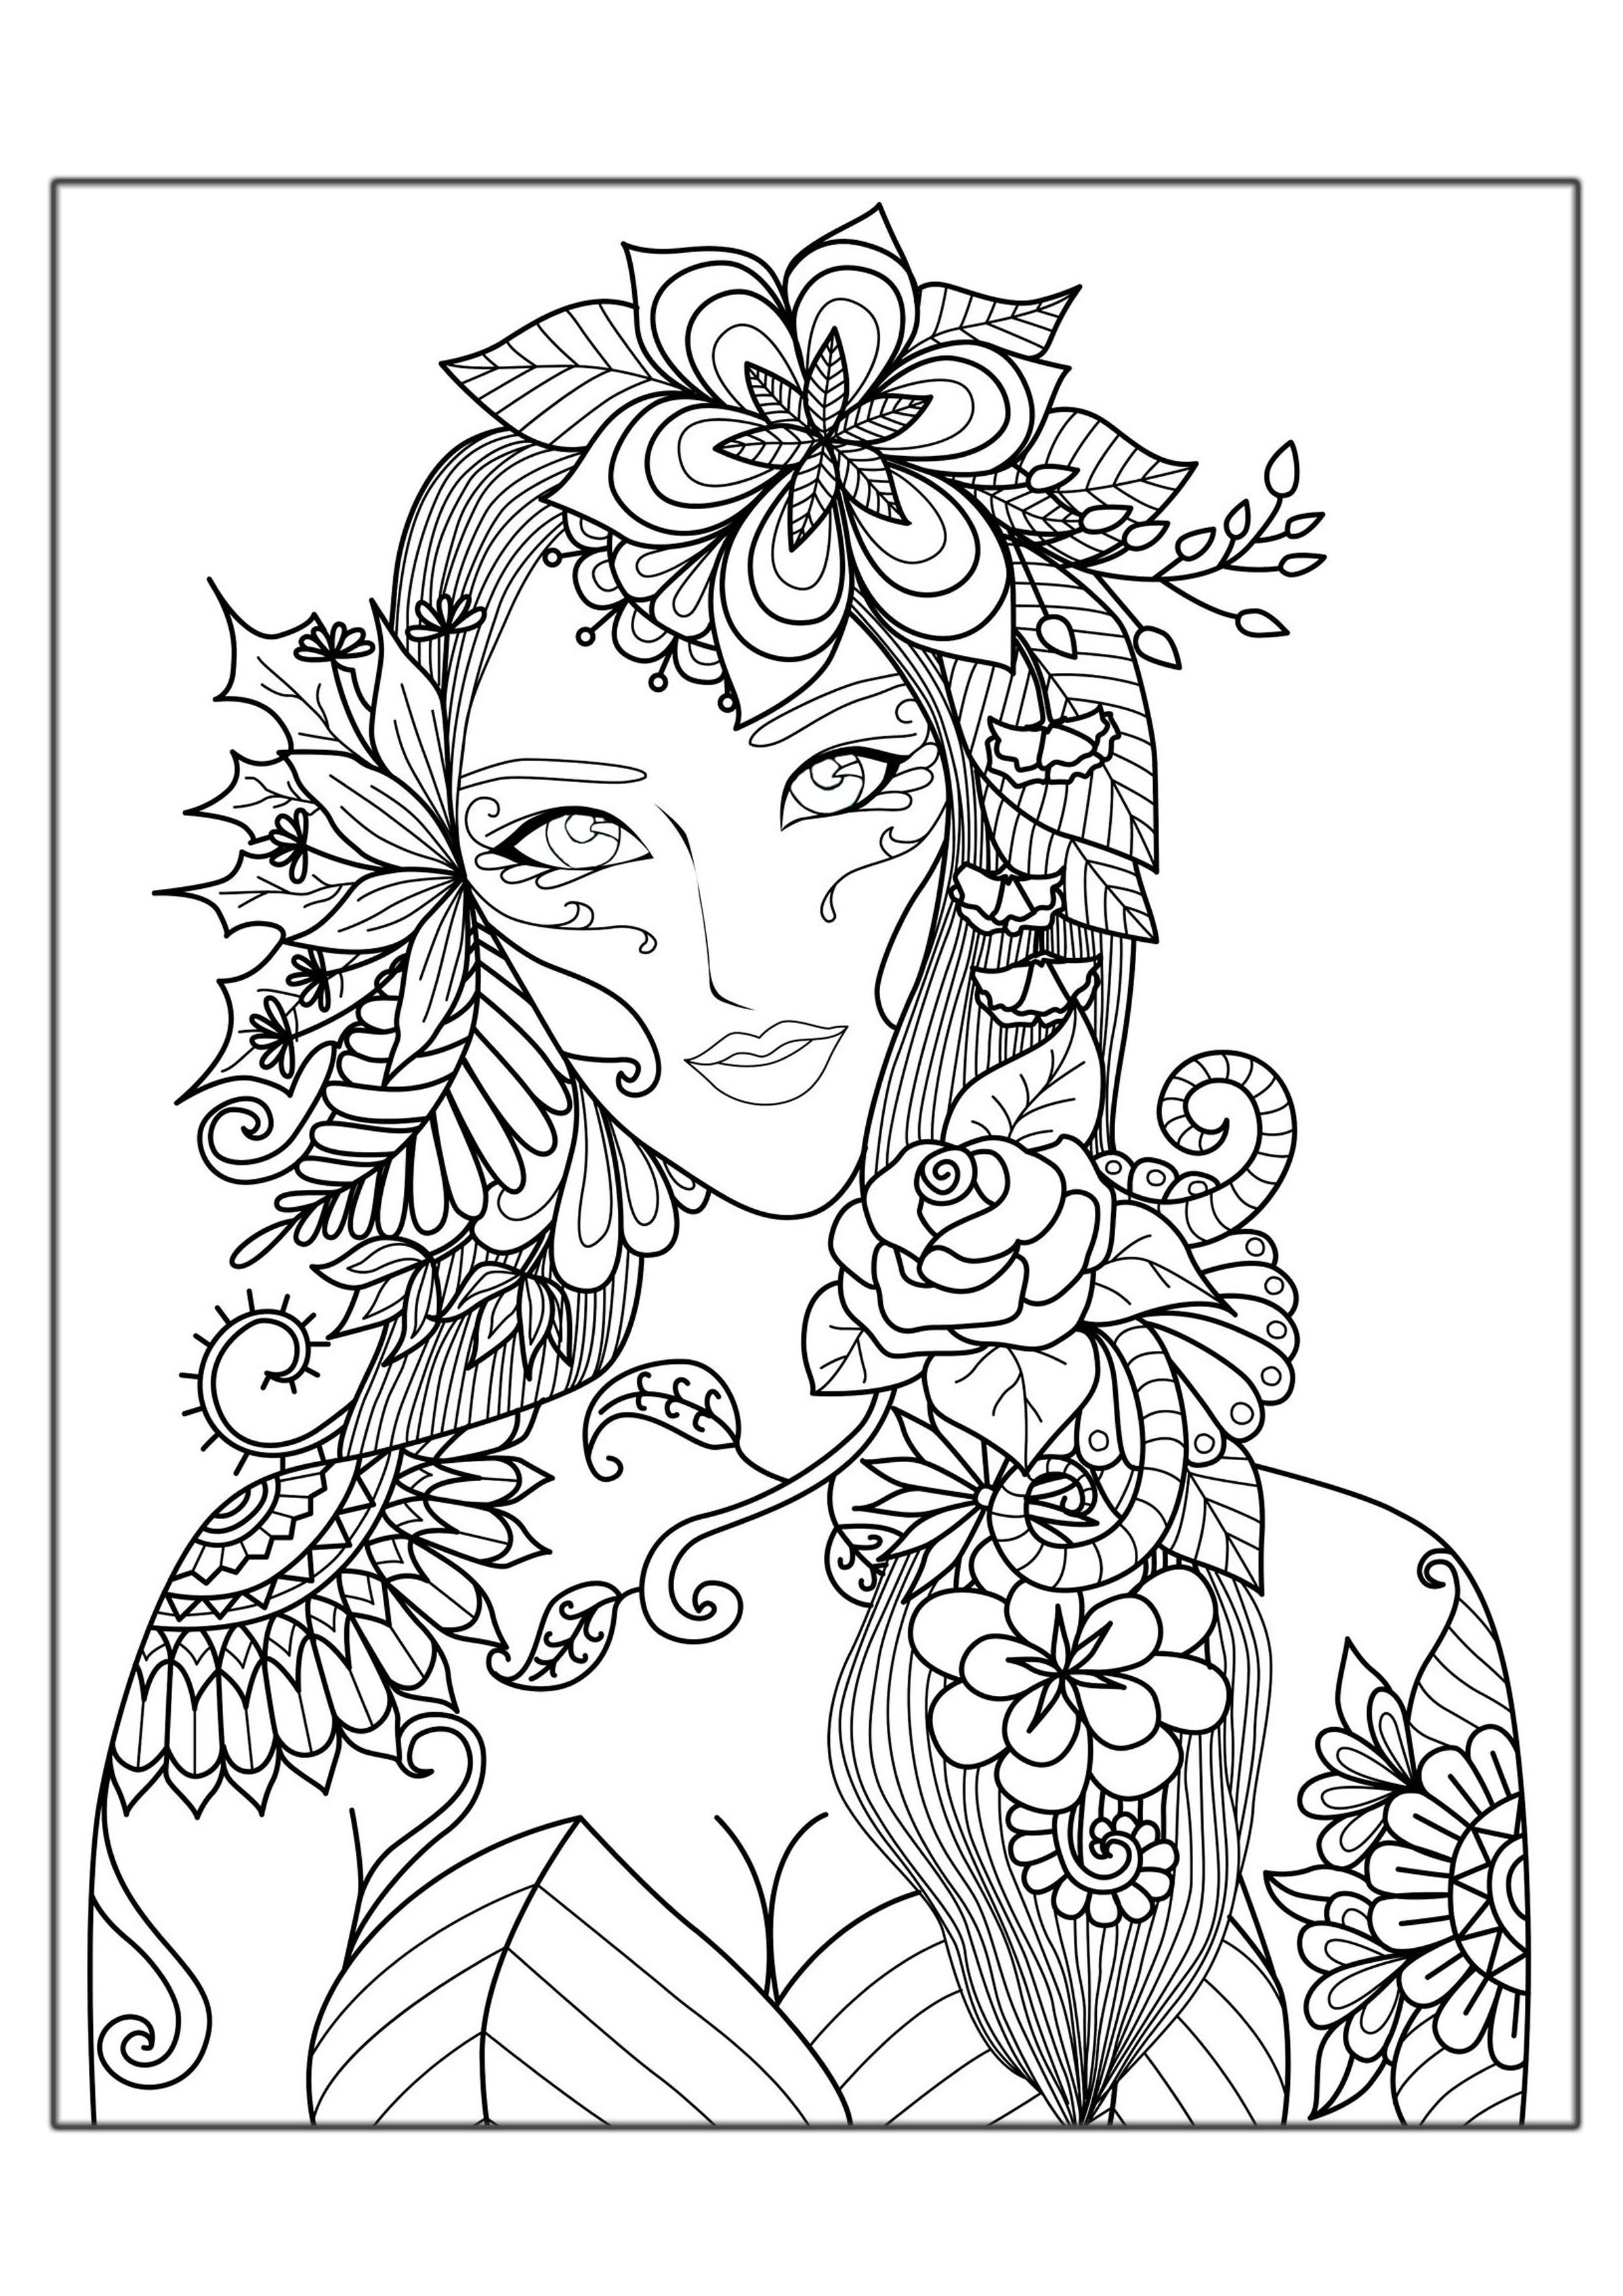 printable pictures to color for adults serendipity adult coloring pages printable color printable adults pictures to for